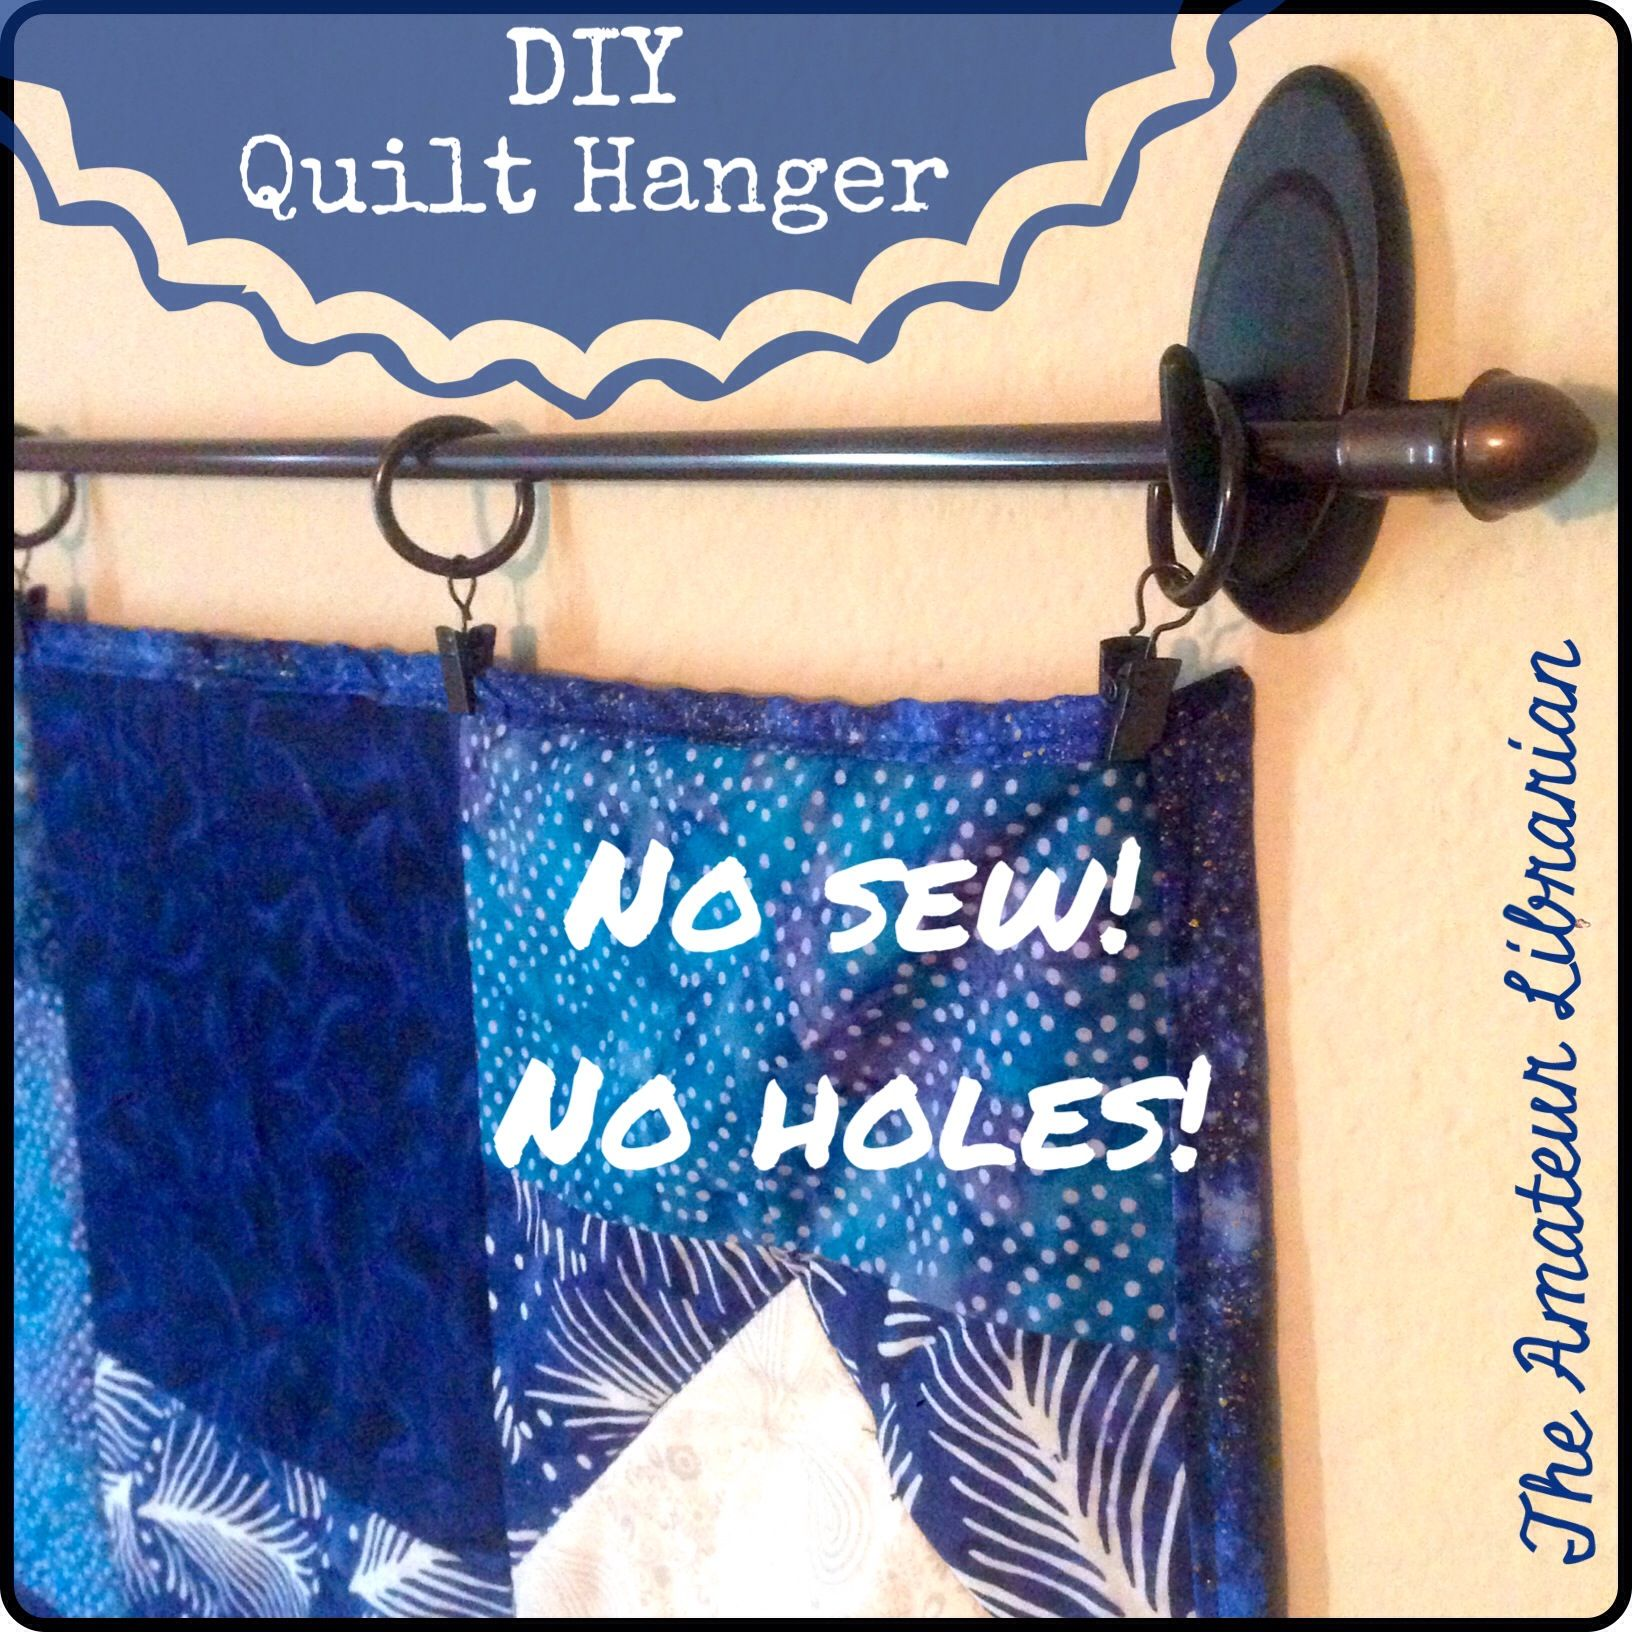 Yep, two steps – no sewing hanging pockets or sleeves to the quilt ... : quilting hangers - Adamdwight.com